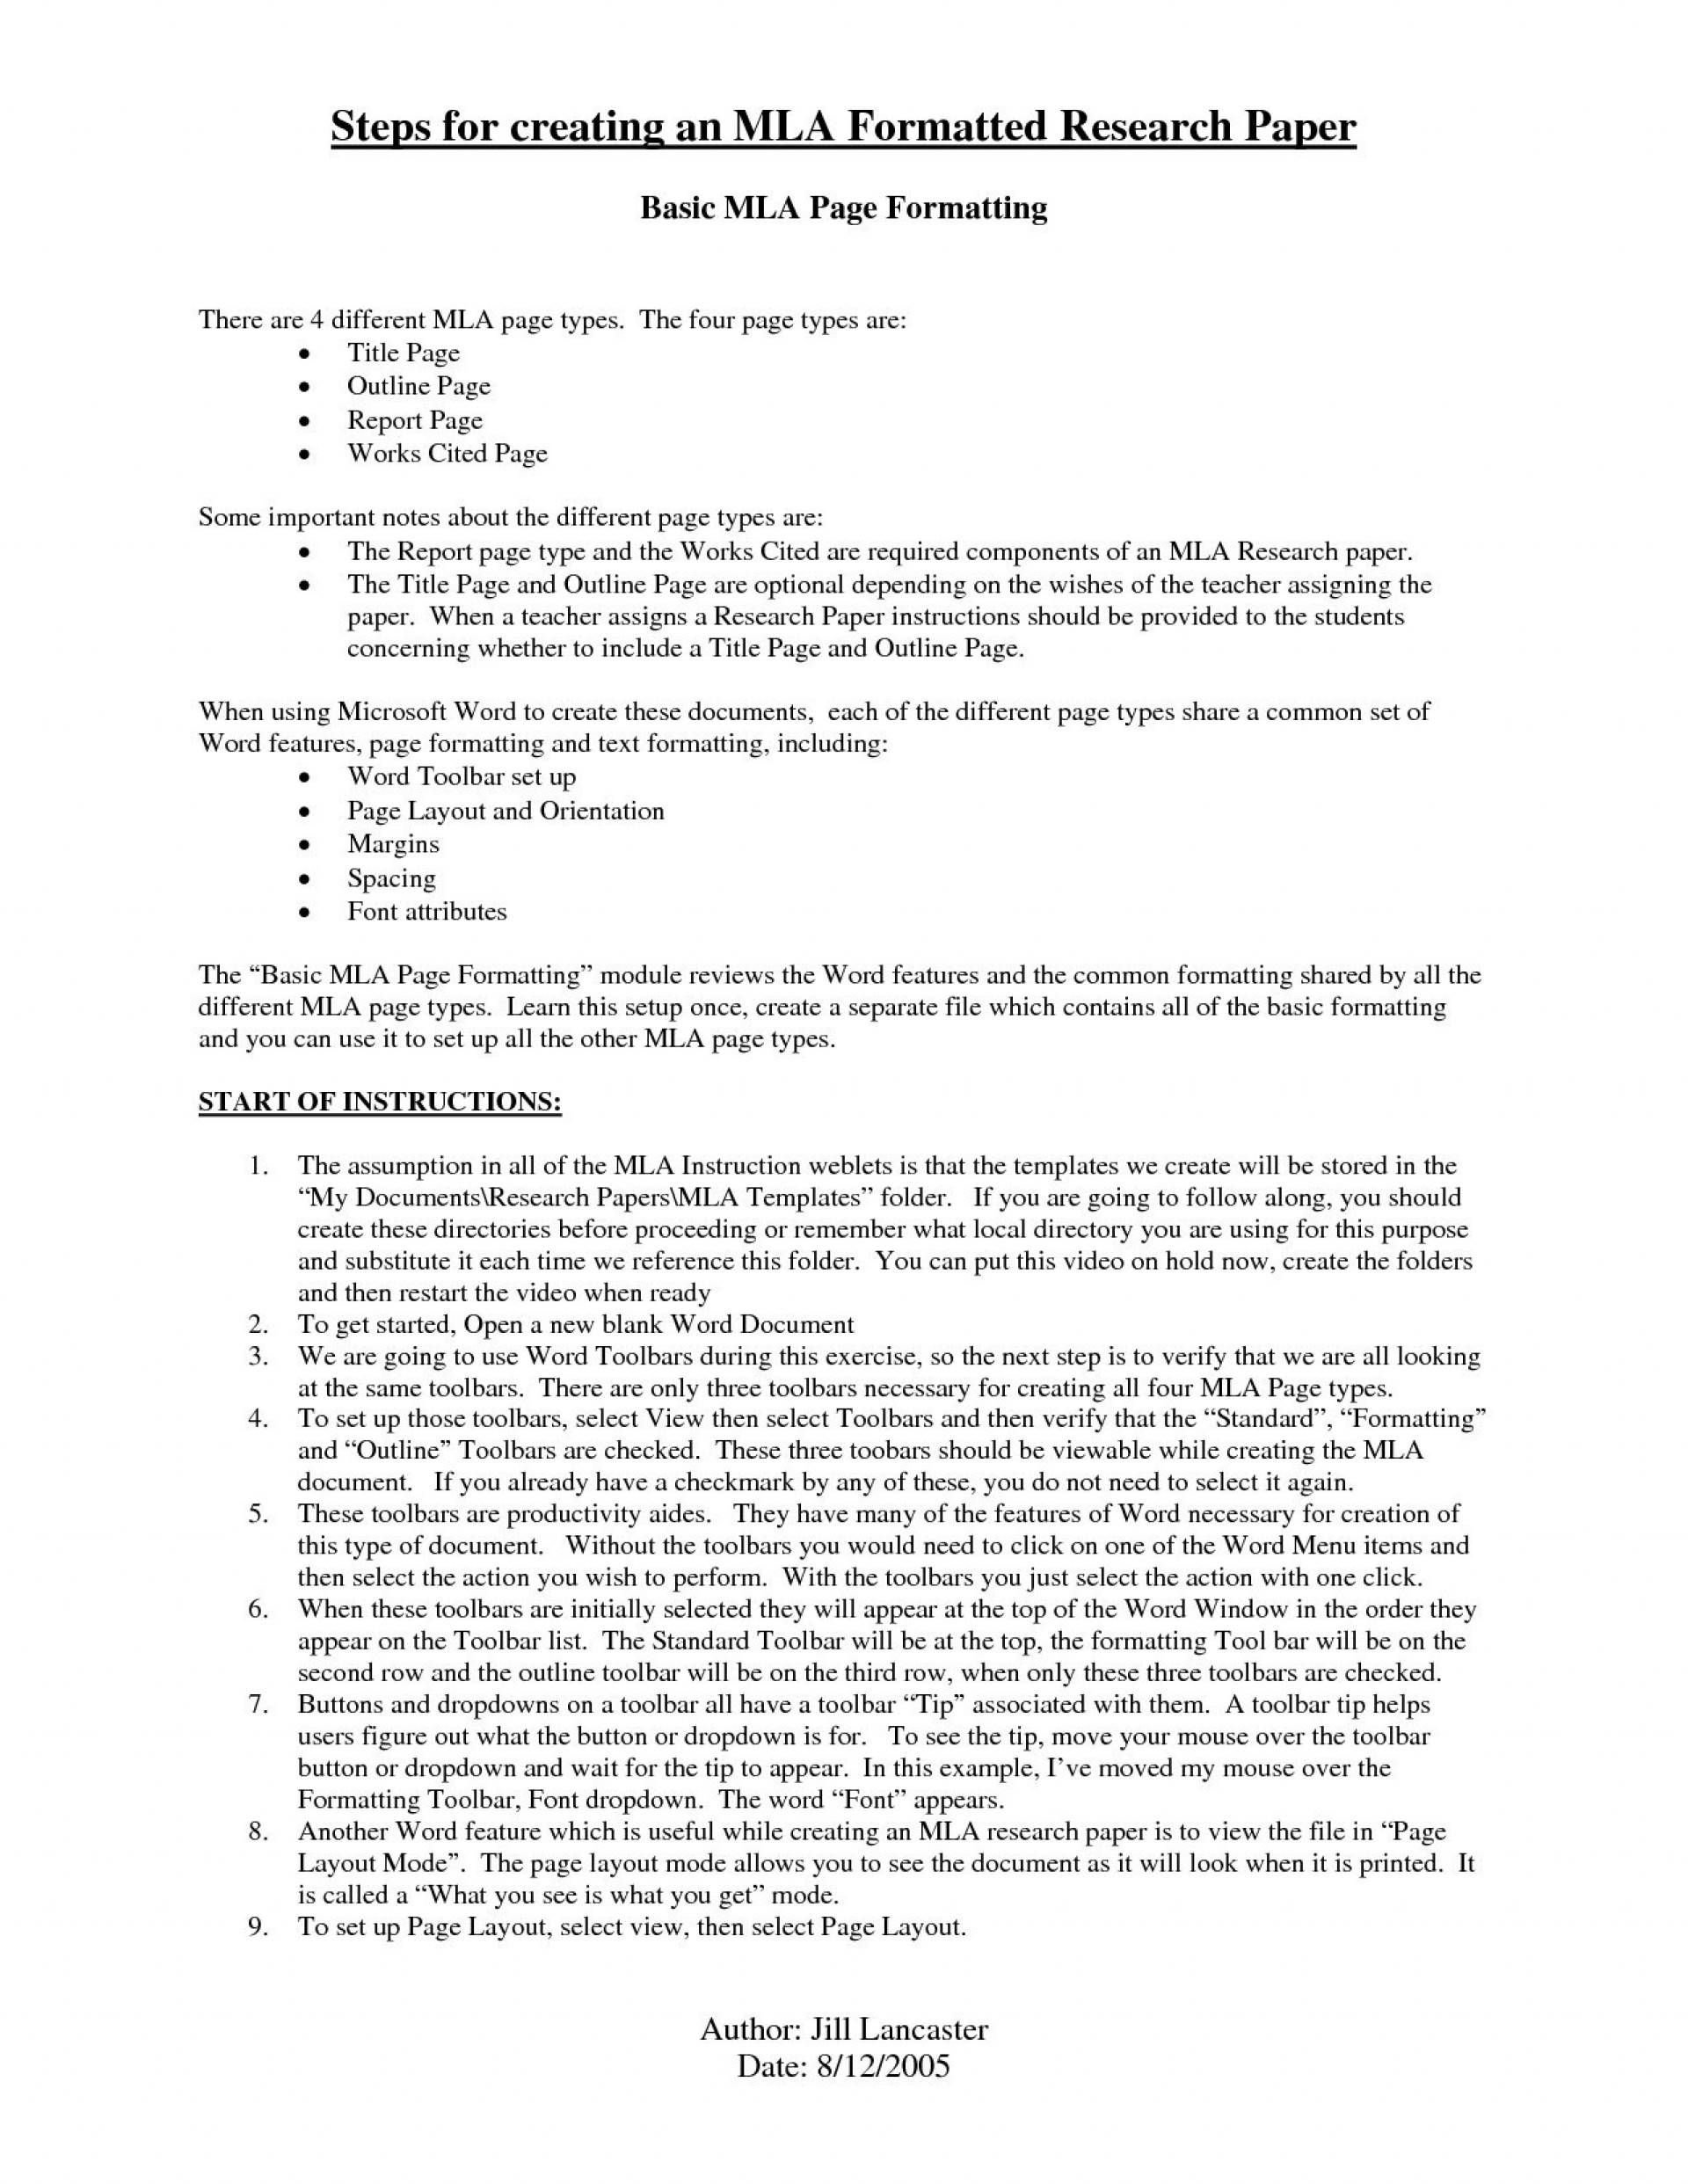 016 How Do You Cite An Essay Example Mla Format Citation Scarlet Letter Best Works Cited Fresh Exceptional Wikipedia In Text To A Book Harvard 1920